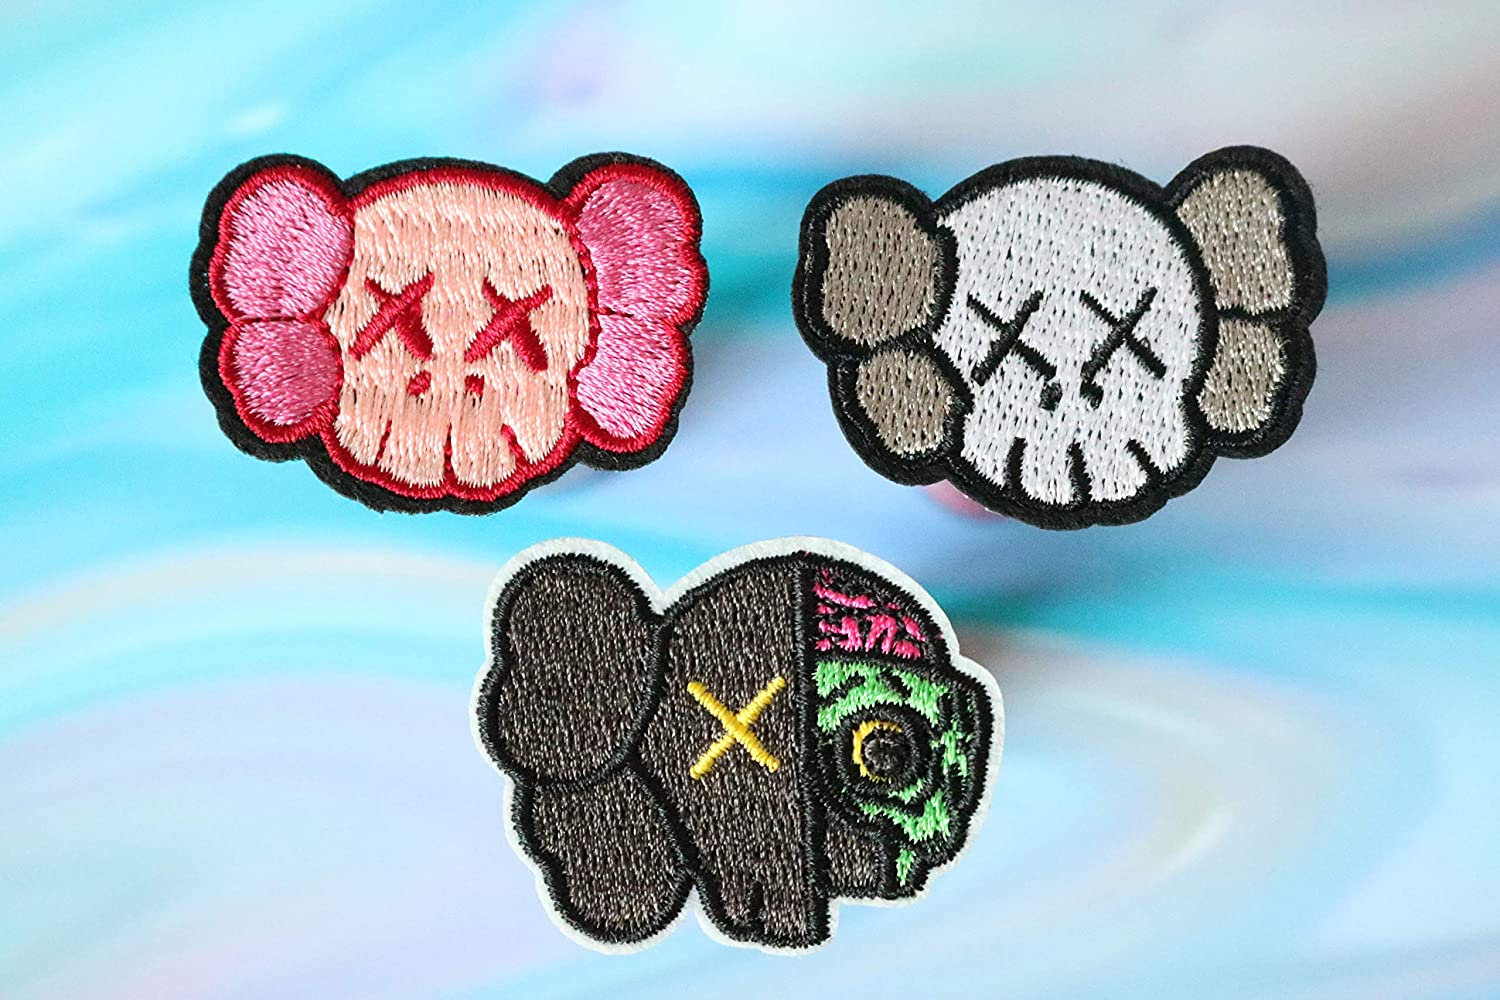 Mini Patch 3PCS Designers Patch, Face Cover Patch, Bundle Embroidery Iron On Patch, for Jackets Jeans Backpacks Elmo Embroidery Patches Iron On Cool Applique 3 PCS Bundle